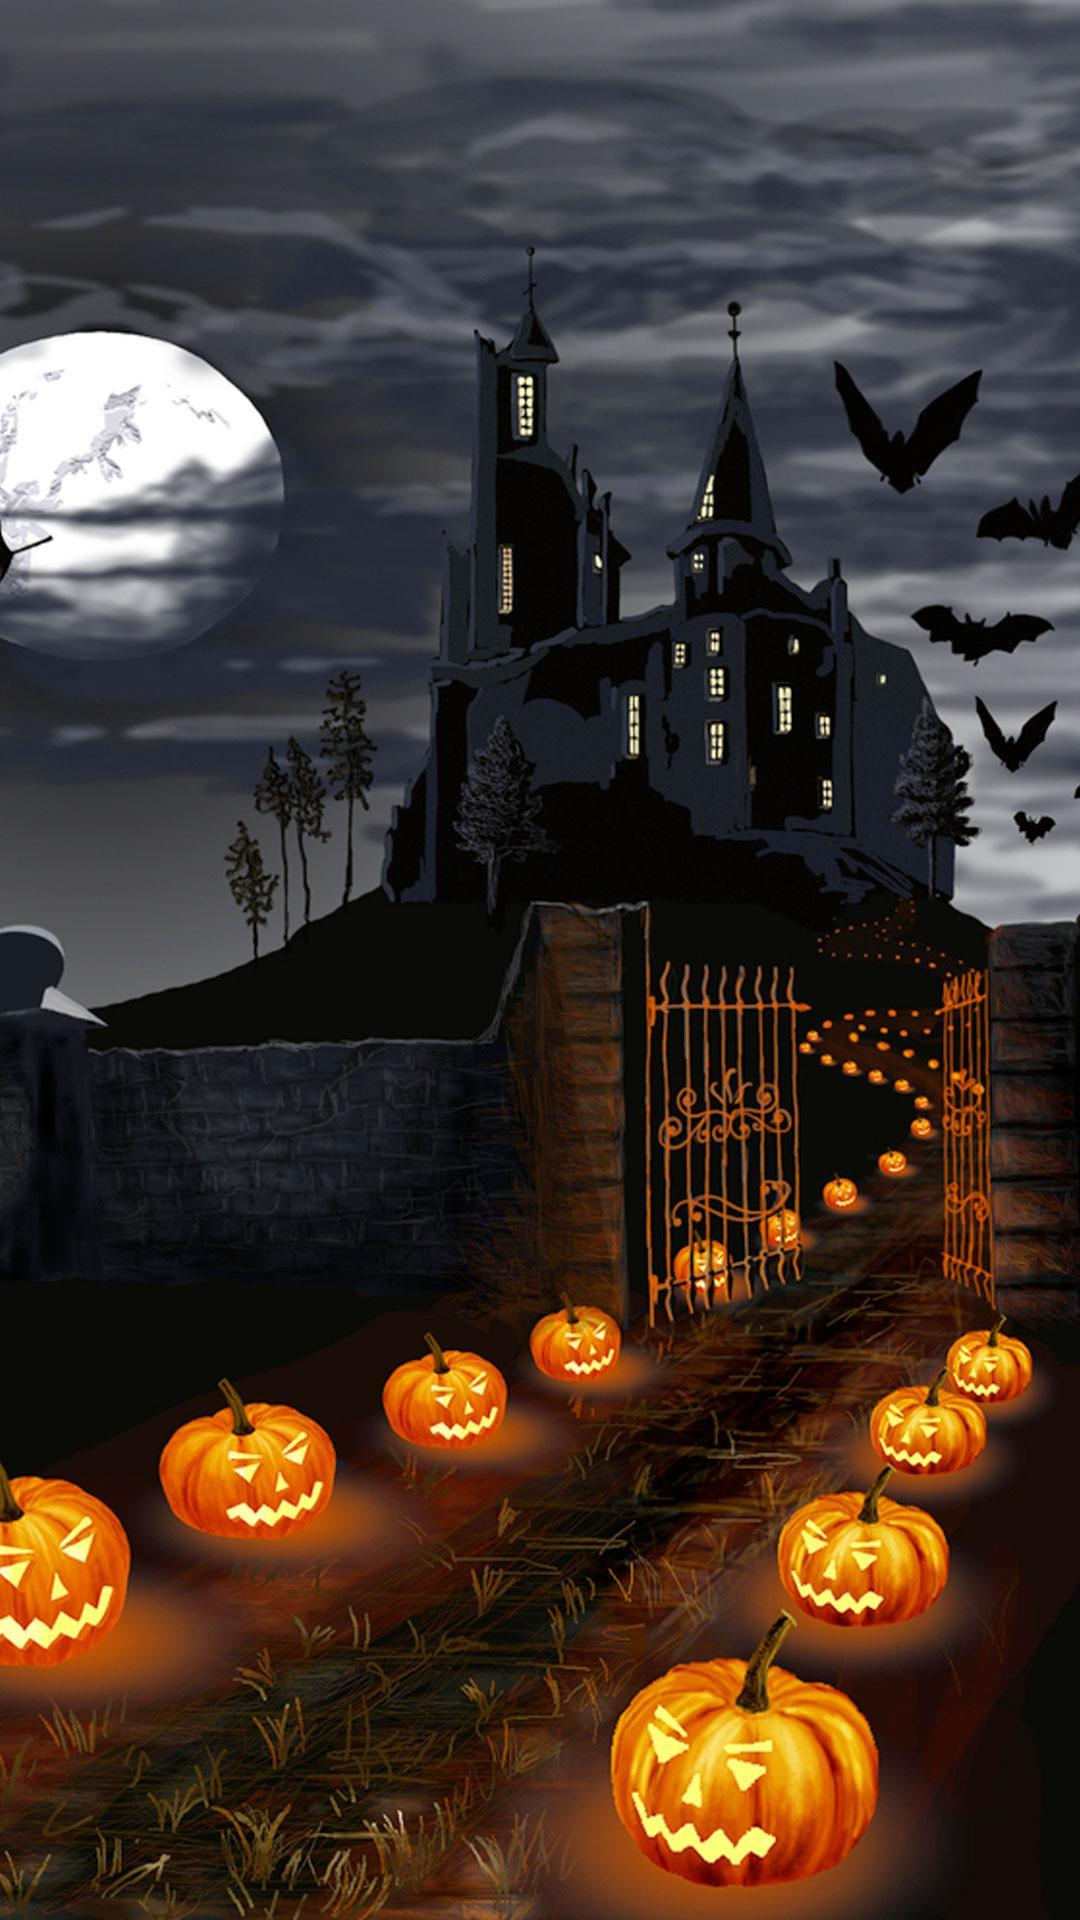 Halloween Wallpapers for Android - APK Download